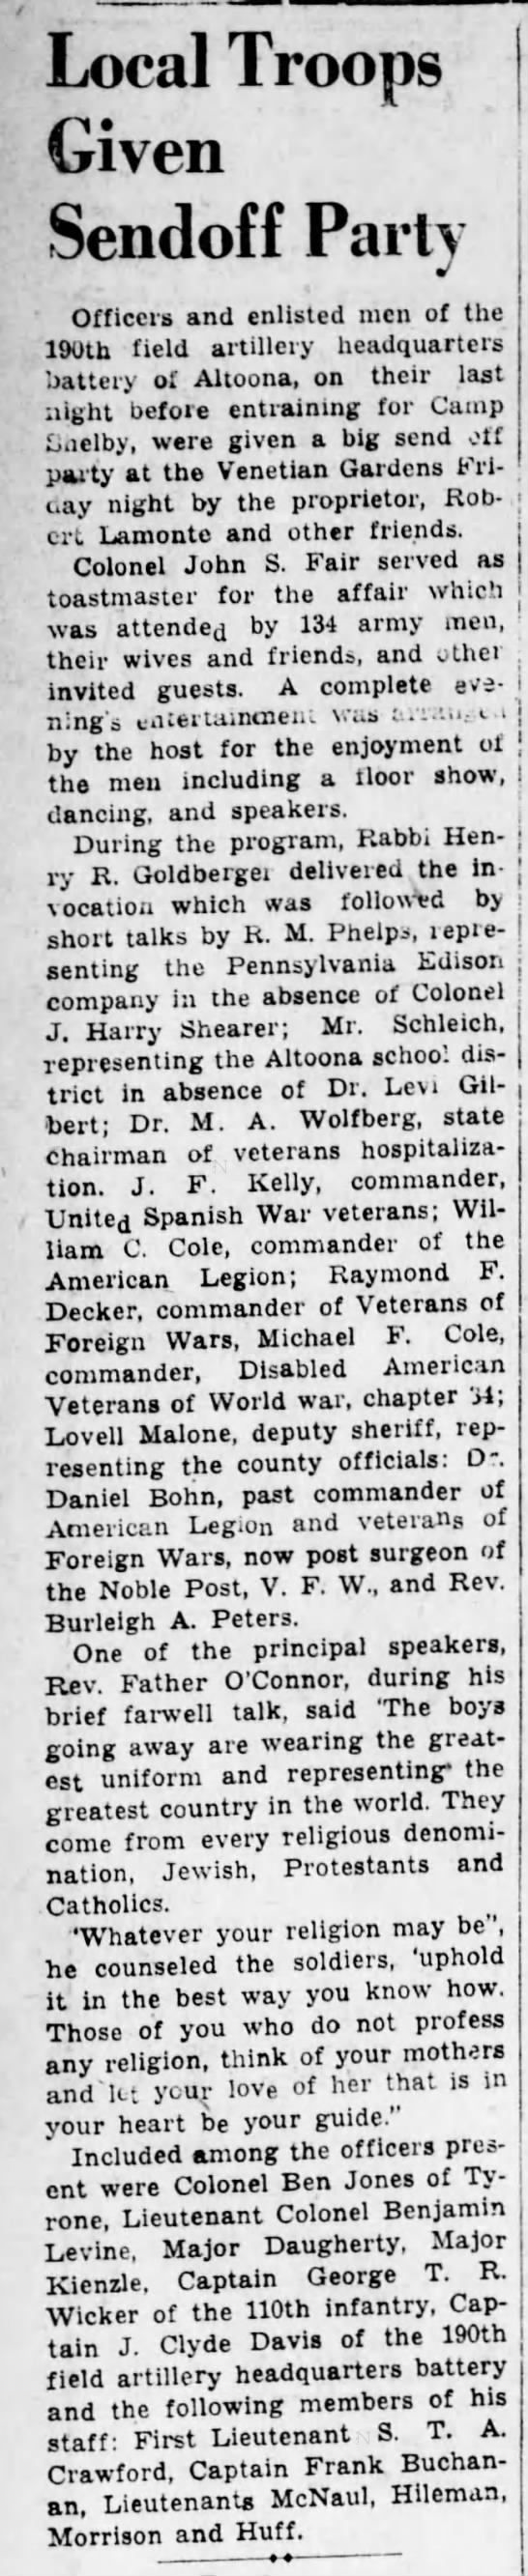 M.A. is state chairman of veterans hospitalization-3 Feb 1941 -